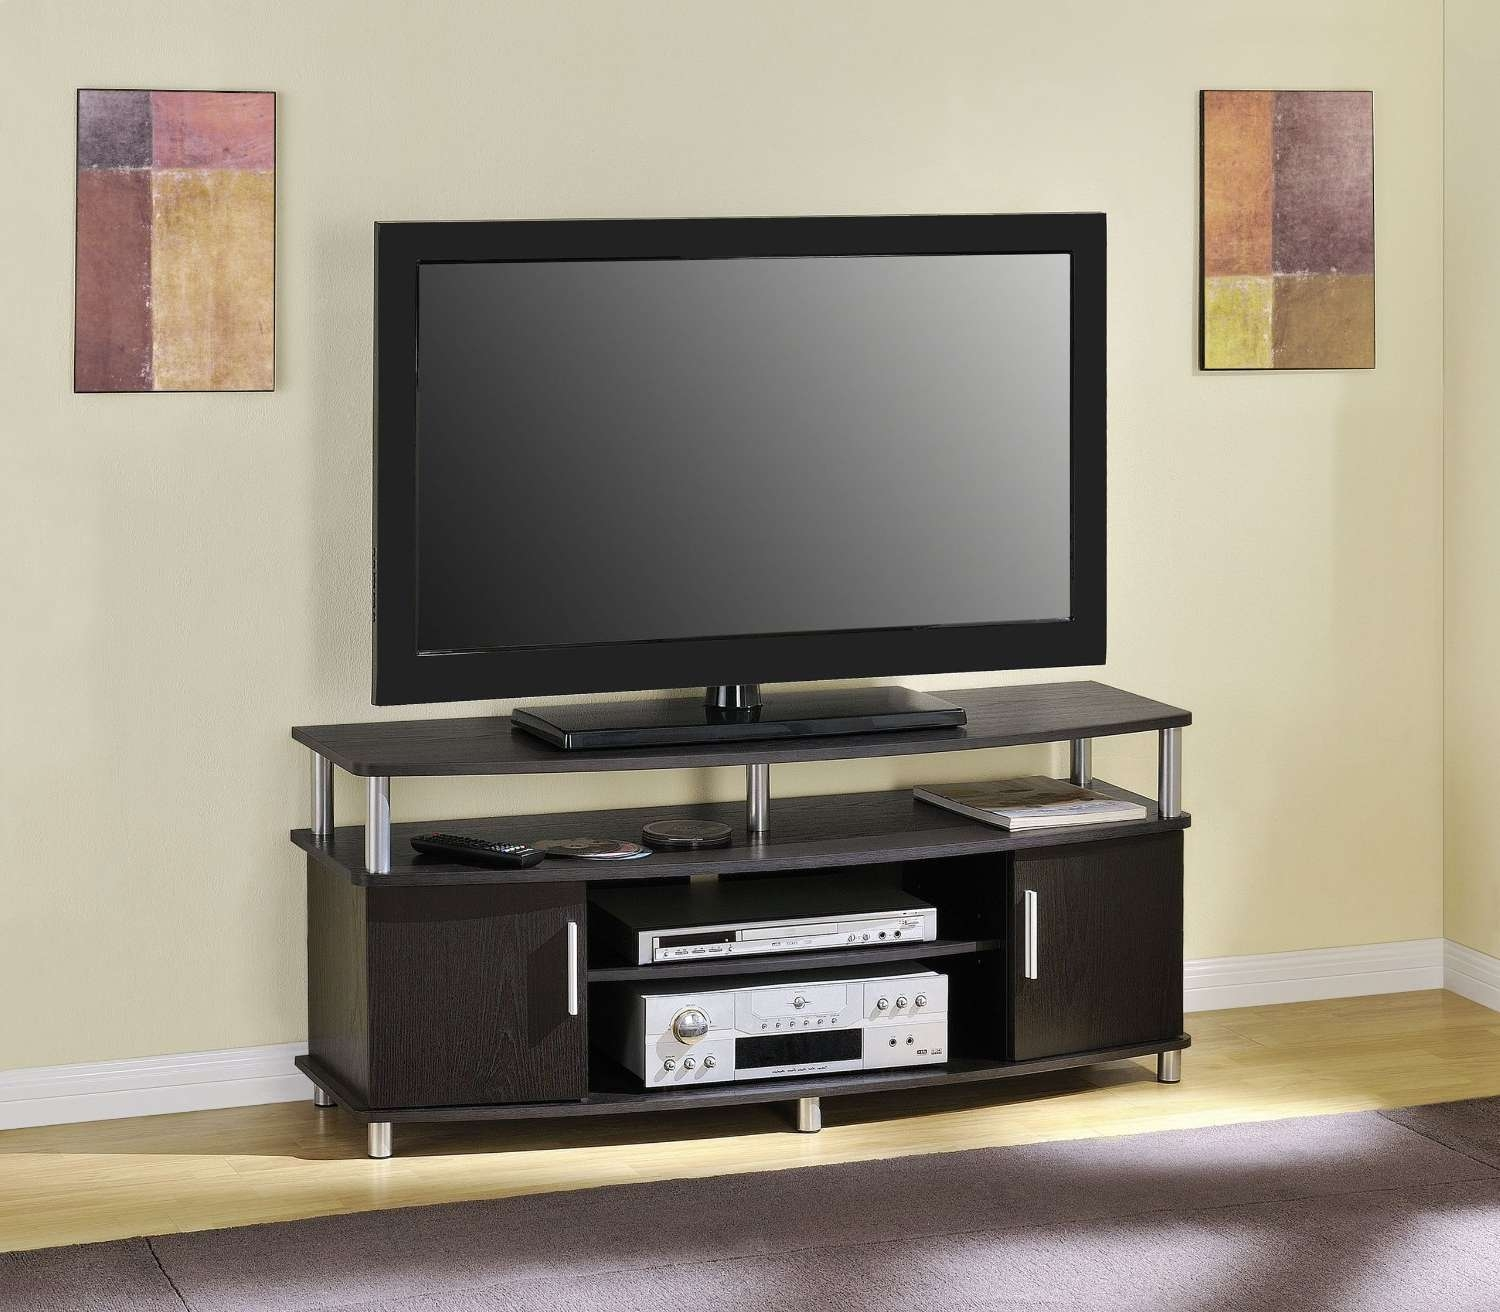 Tv Stands: 7 Best Selling Flat Screen Tv Stands 2017 Regarding Stand And Deliver Tv Stands (View 20 of 20)